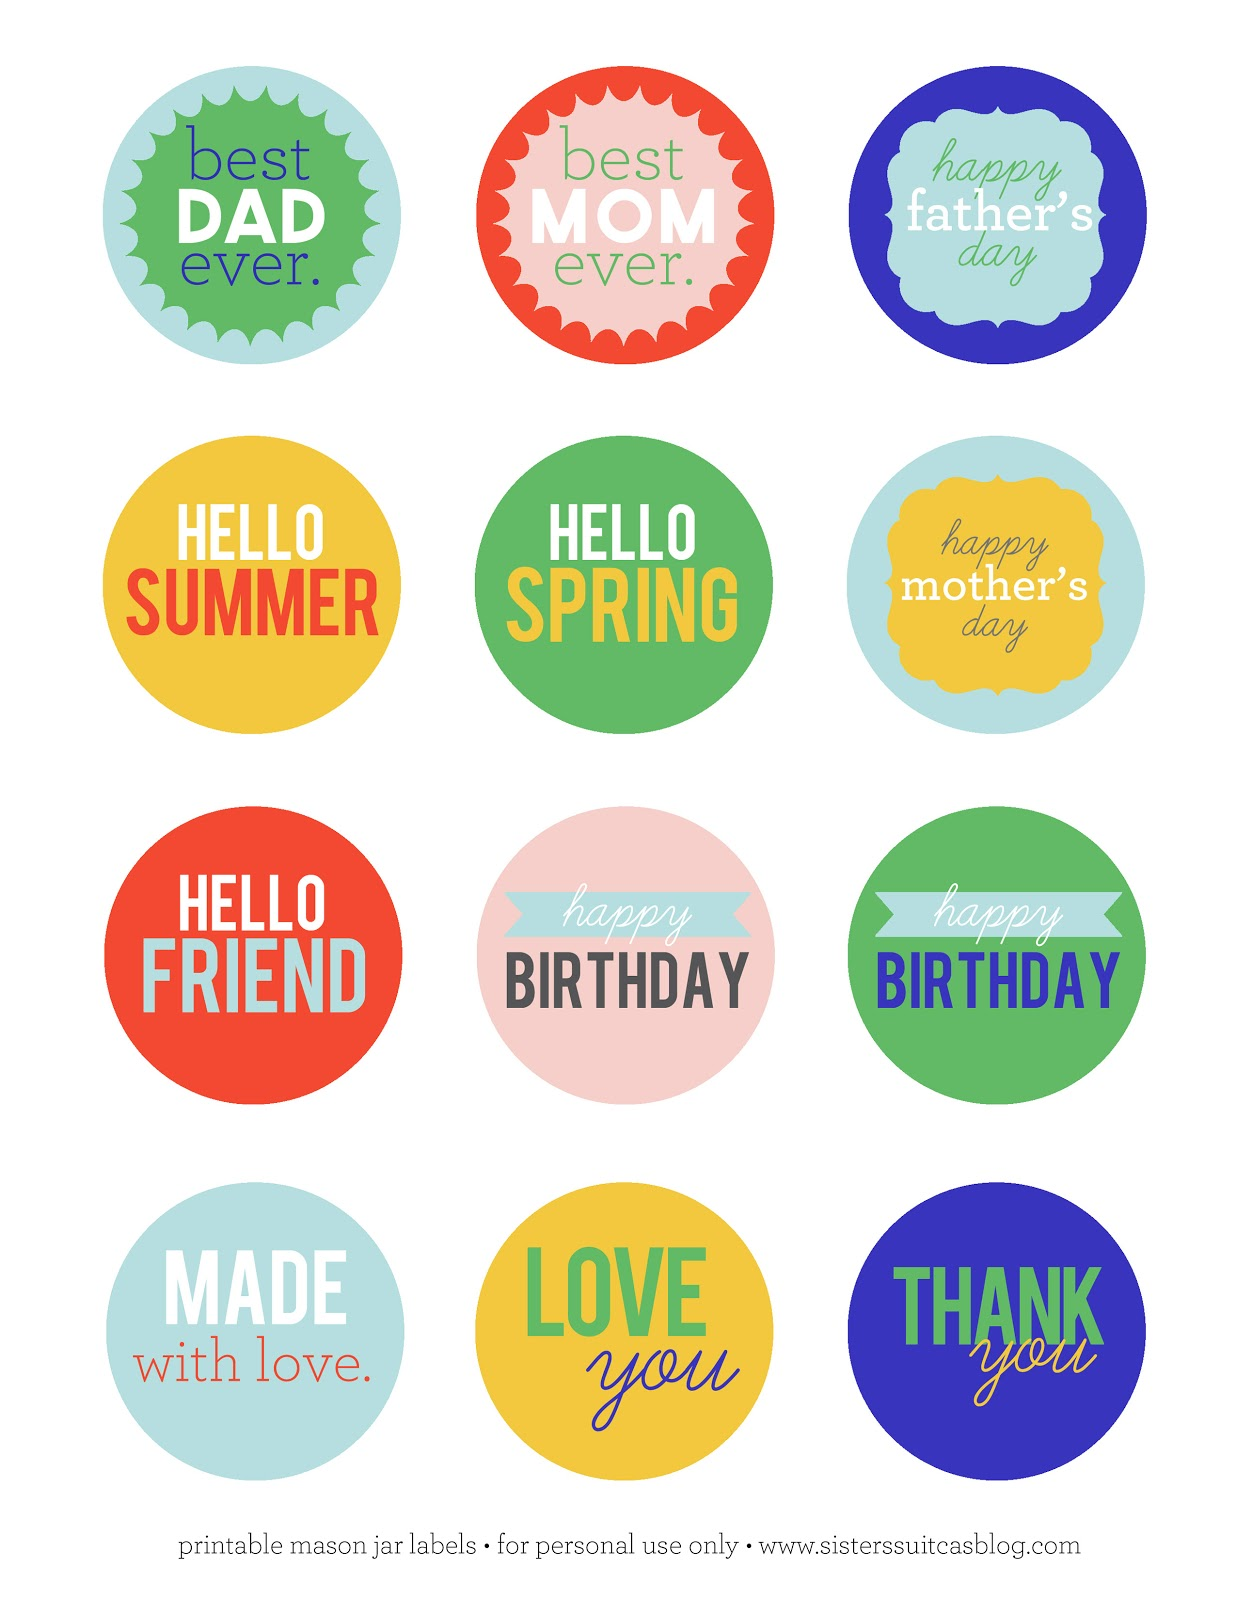 photo about Printable Mason Jar Label named Mason Jar Tag Printables - My Sisters Suitcase